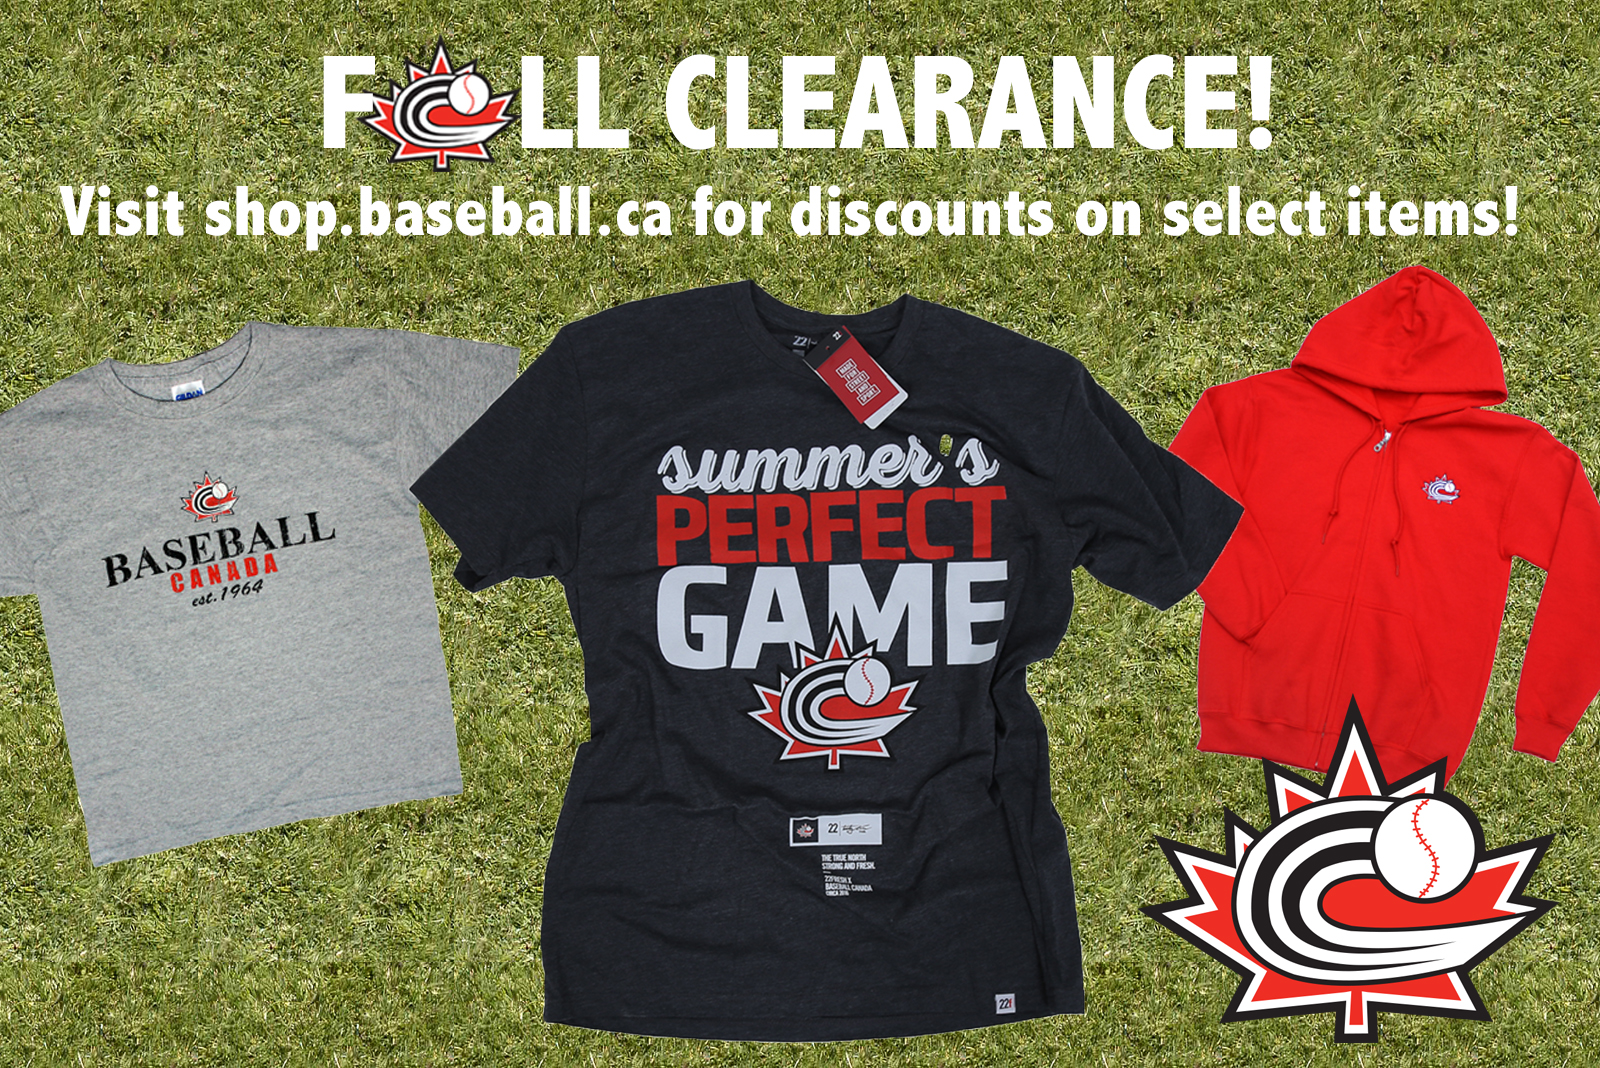 FALL CLEARANCE SALE!